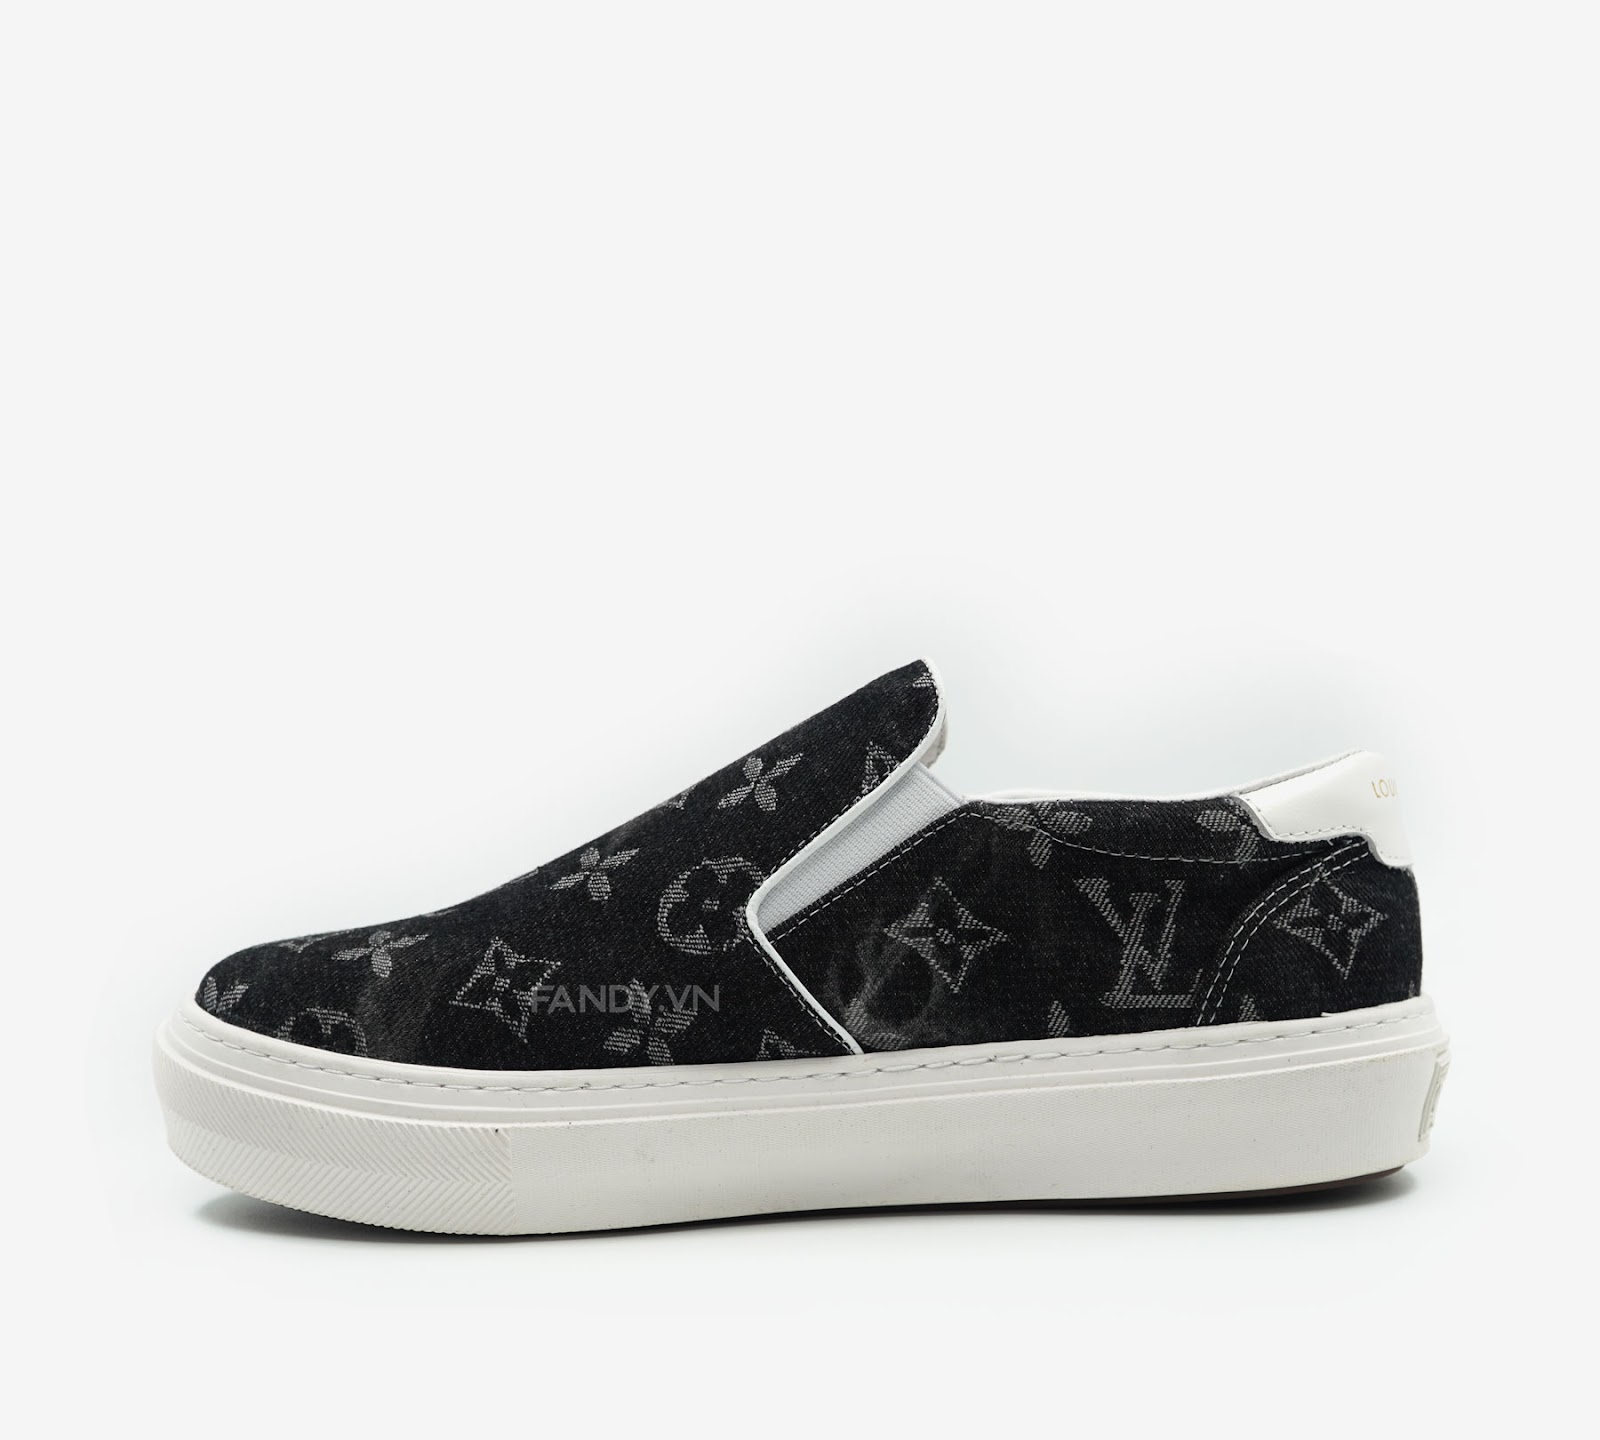 Louis Vuitton Slip-on Trocadero